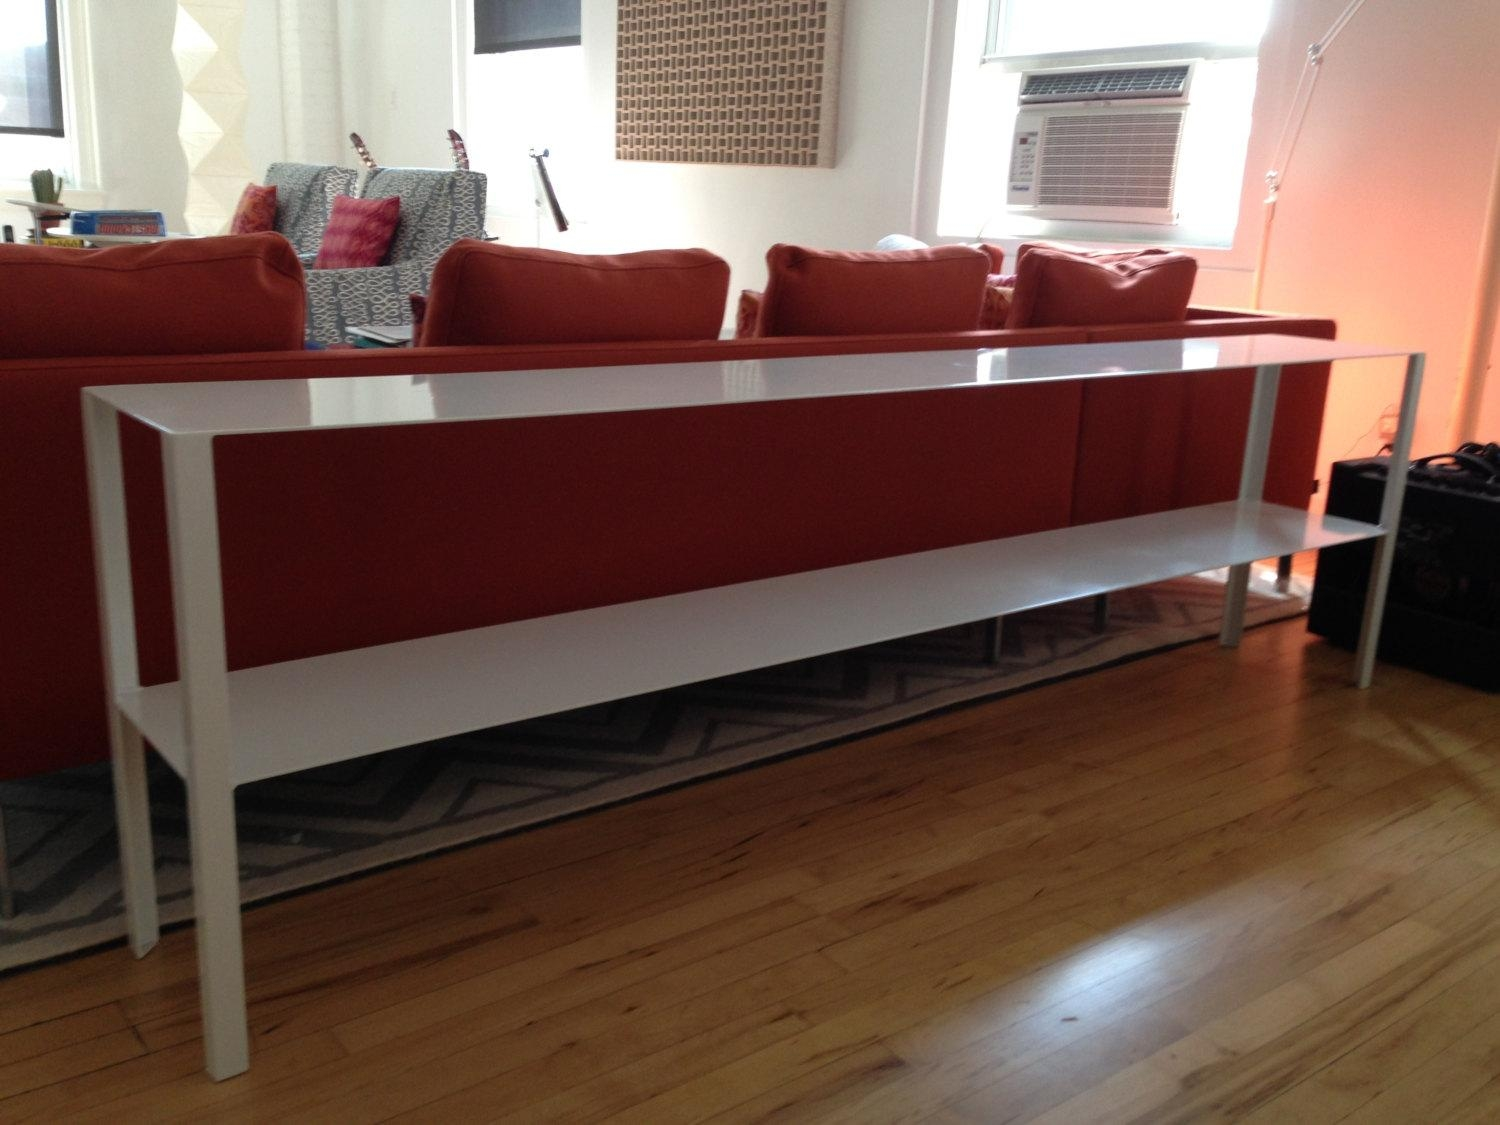 Elegant Narrow Sofa Table 33 In Modern Sofa Inspiration With In Narrow Sofa Tables (View 17 of 23)